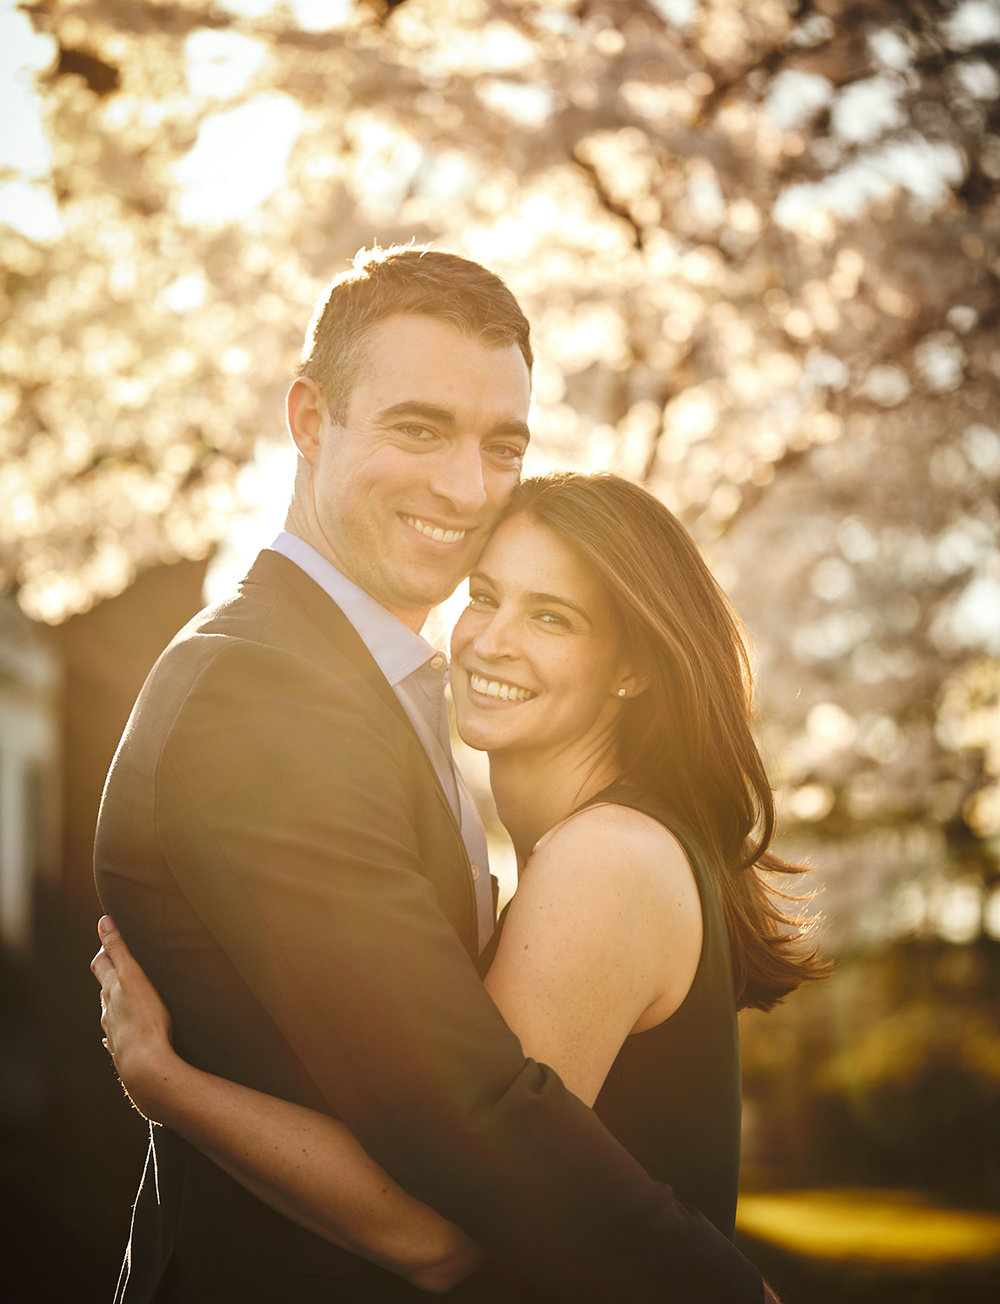 180422_StevensInstitureofTechnologyEngagementPhotography_HobokenEngagement Photography_By_BriJohnsonWeddings_0025.jpg